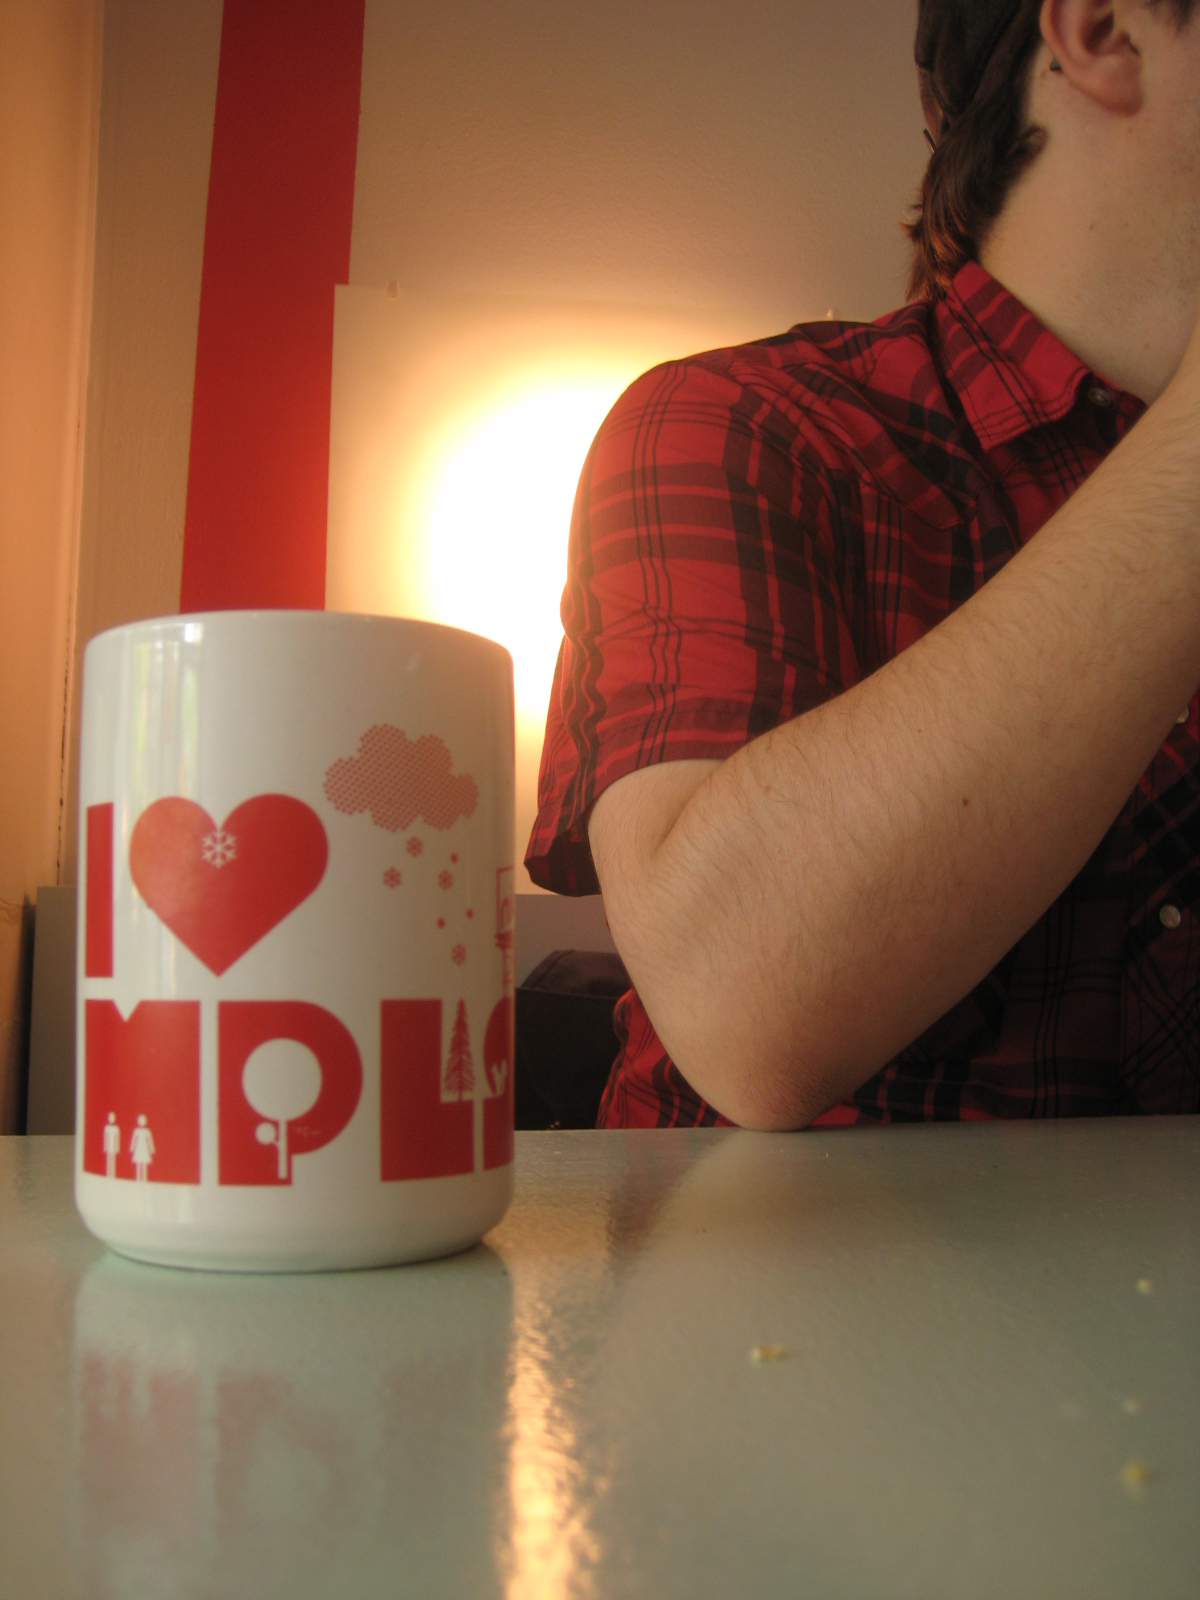 Aviat-Networks-Hearts-MPLS-coffee-cup-February-06-2015